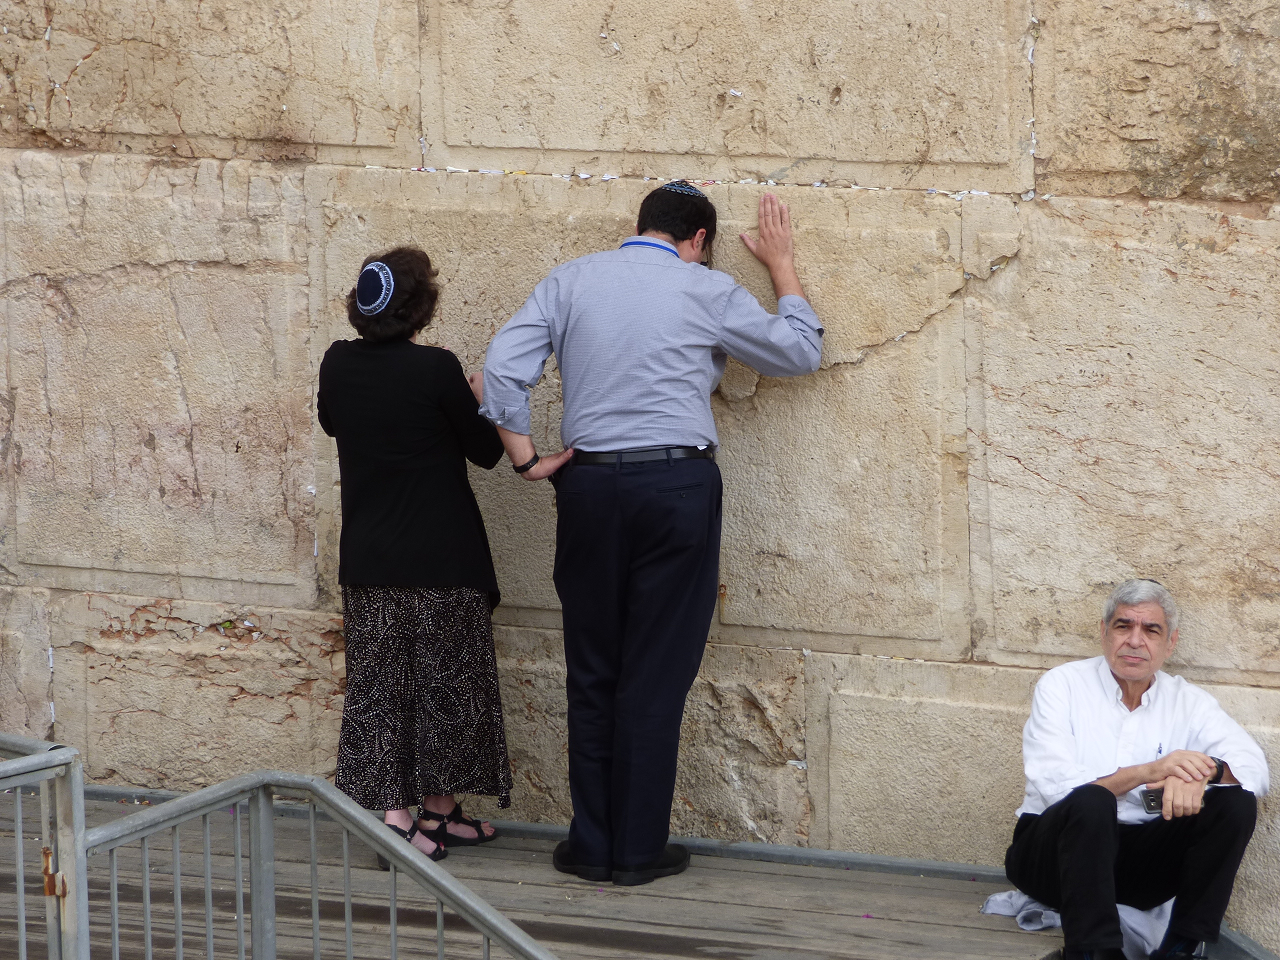 Members of the Jewish Agency Board of Governors pray at the egalitarian section of the Western Wall, October 30, 2017. Photo credit: David Shechter for The Jewish Agency for Israel.